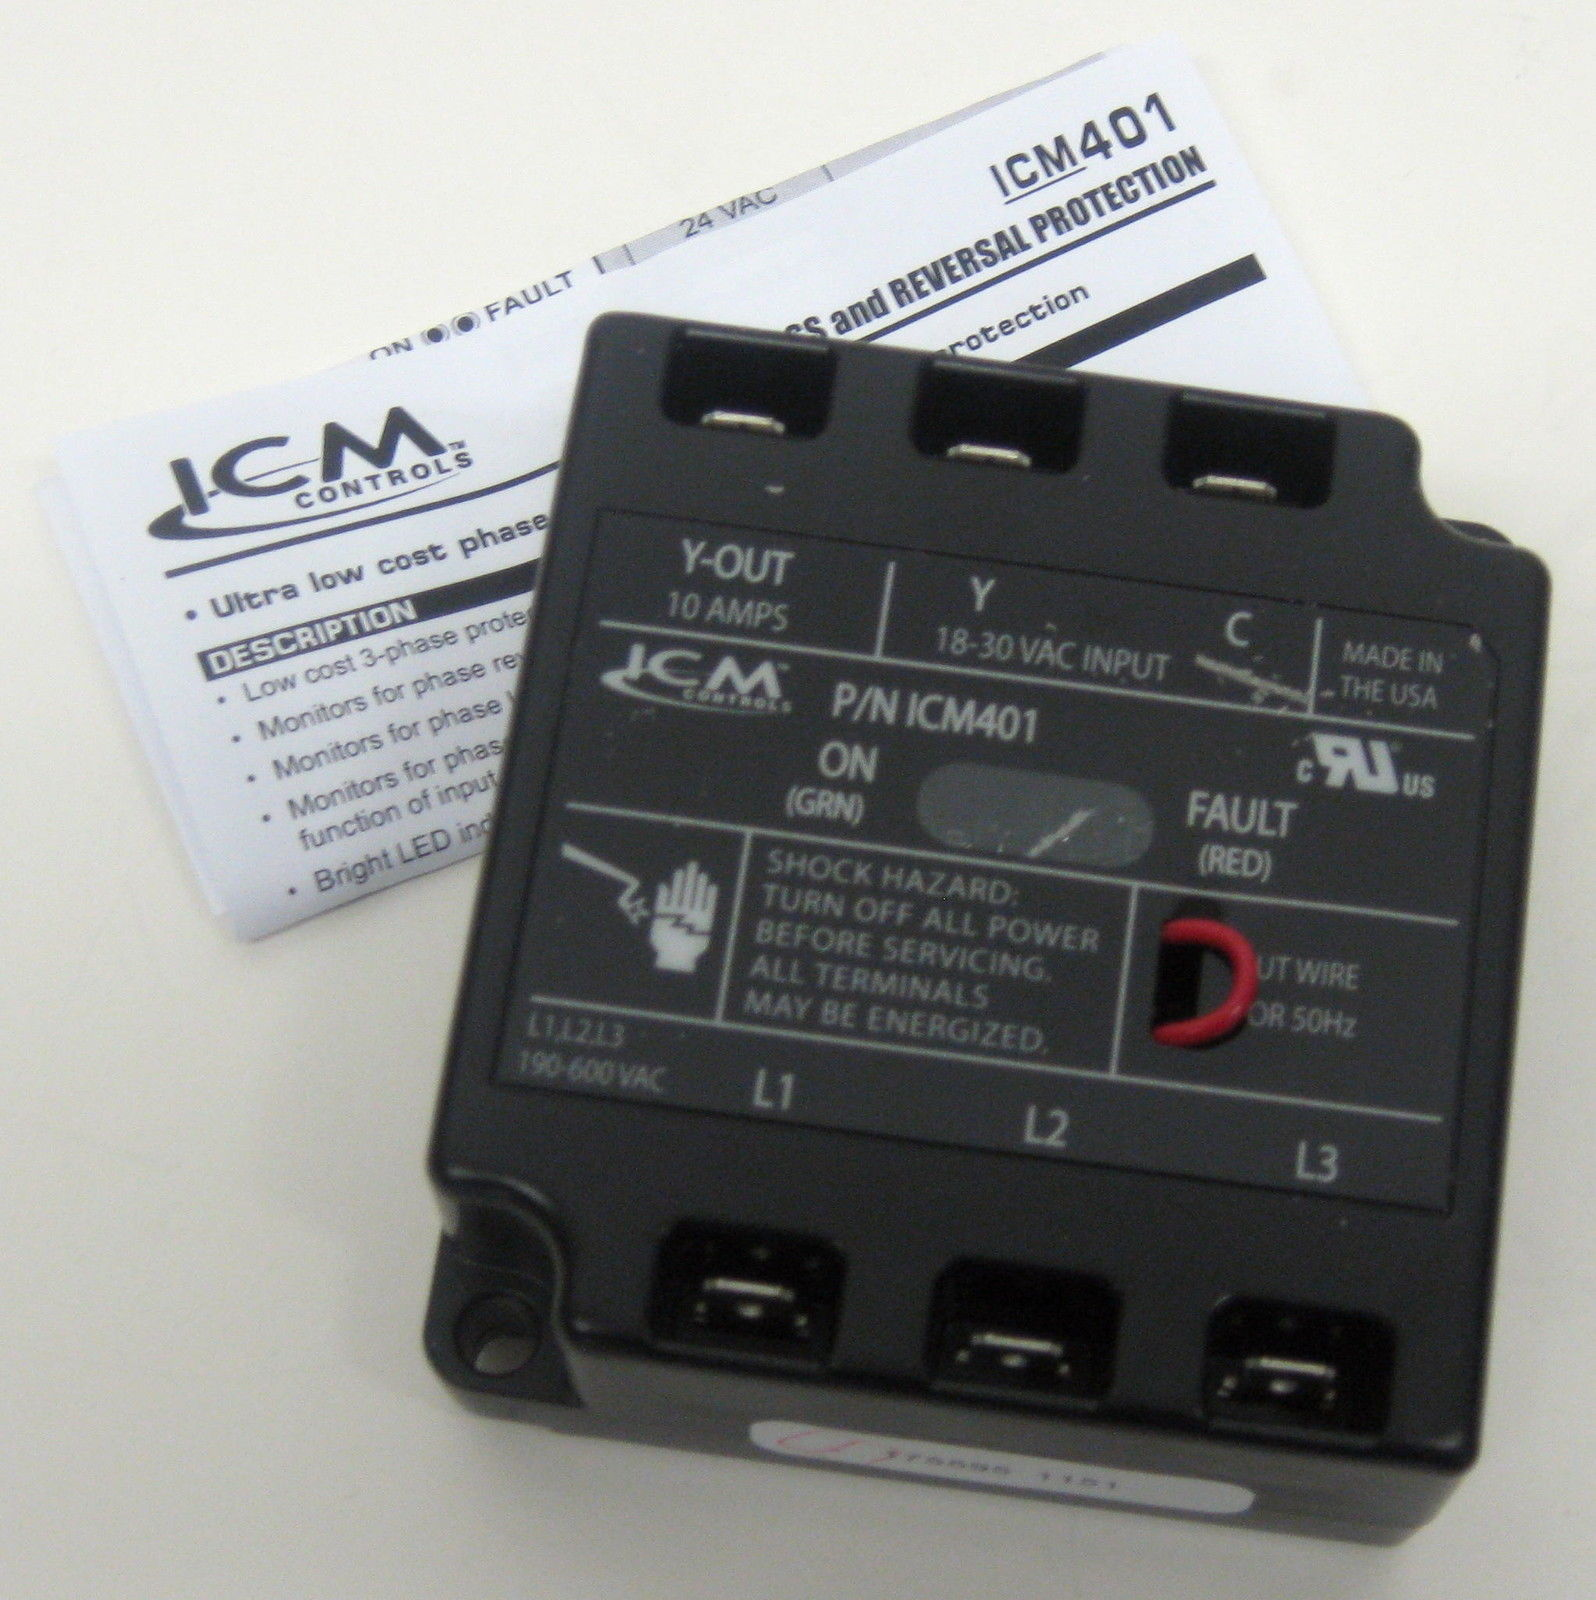 Phase Loss Monitor : Icm three phase line voltage monitor loss protector